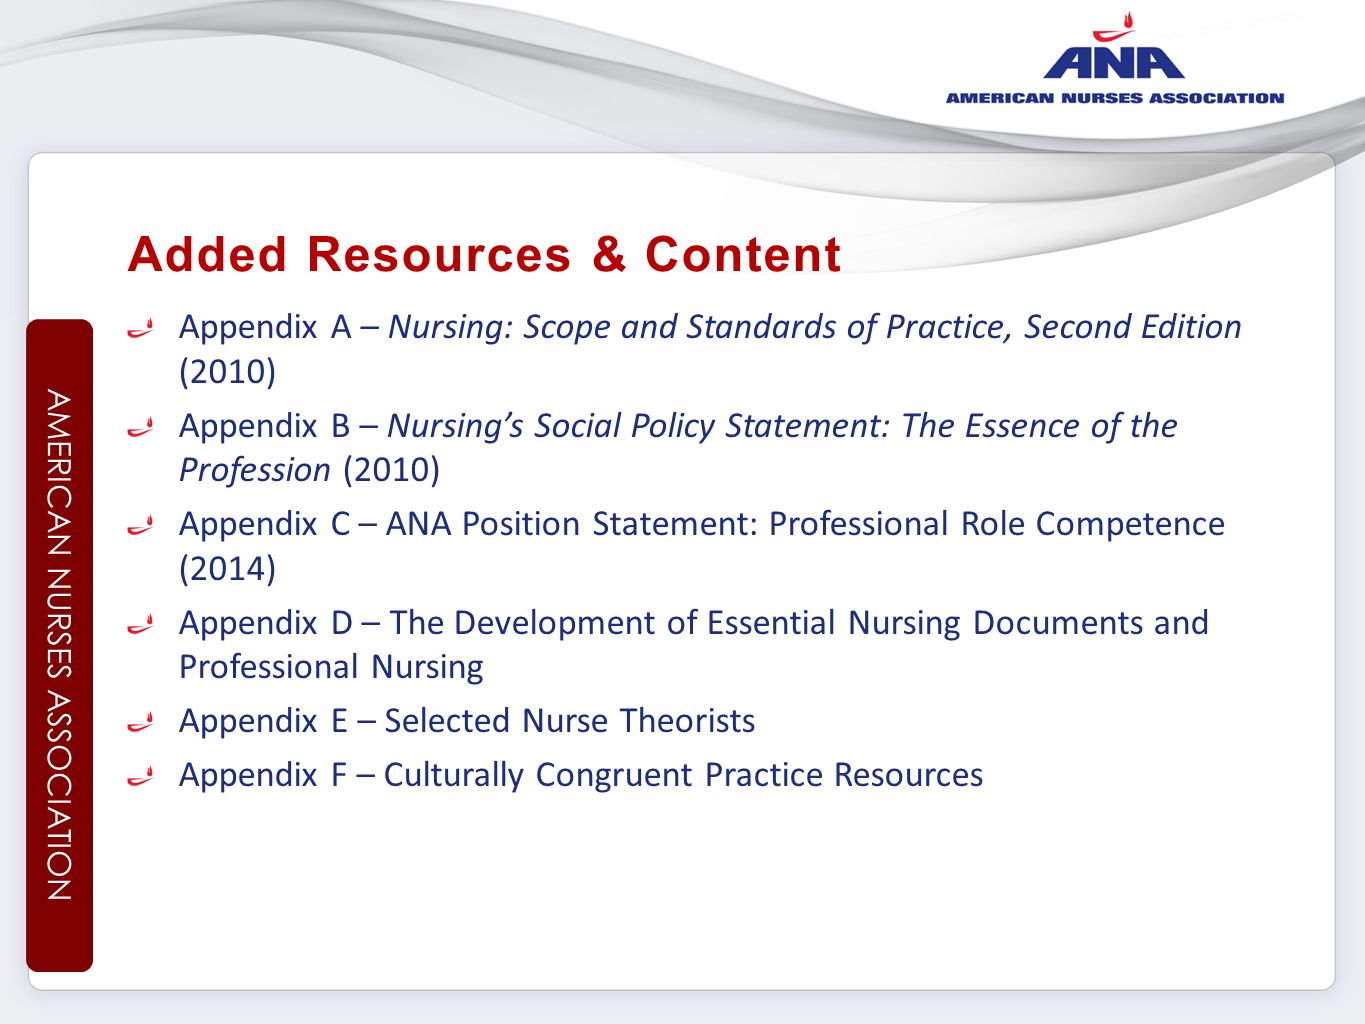 chapter 11 blended skills and critical thinking throughout the nursing process Unit 3: nursing process: --chapter 11: blended skills and critical thinking throughout the nursing process --nursing process --blended skills and critical thinking --critical thinking and clinical reasoning --reflective practice --chapter 12: assessing --unique focus of nursing assessment --assessment and critical thinking --types of nursing.